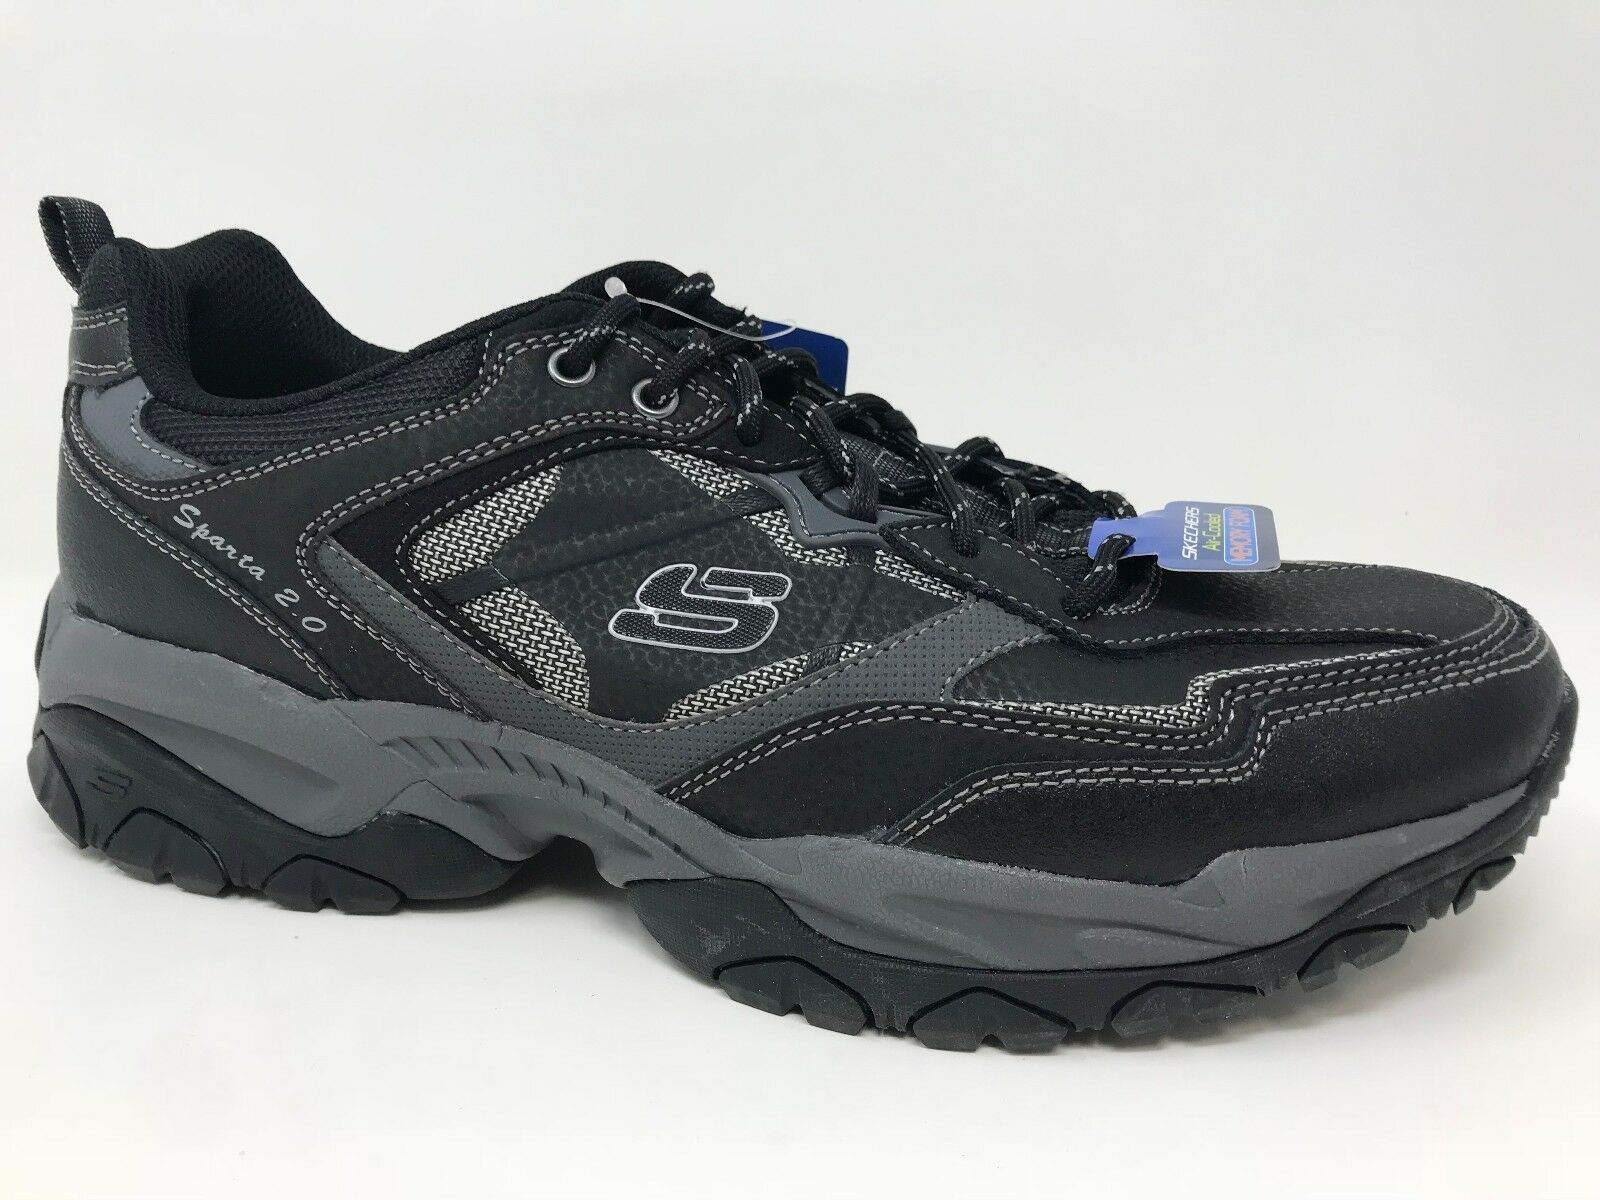 New  Men's Skechers 52700 Sparta 2.0 TR Athletic Training shoes Black Char E1